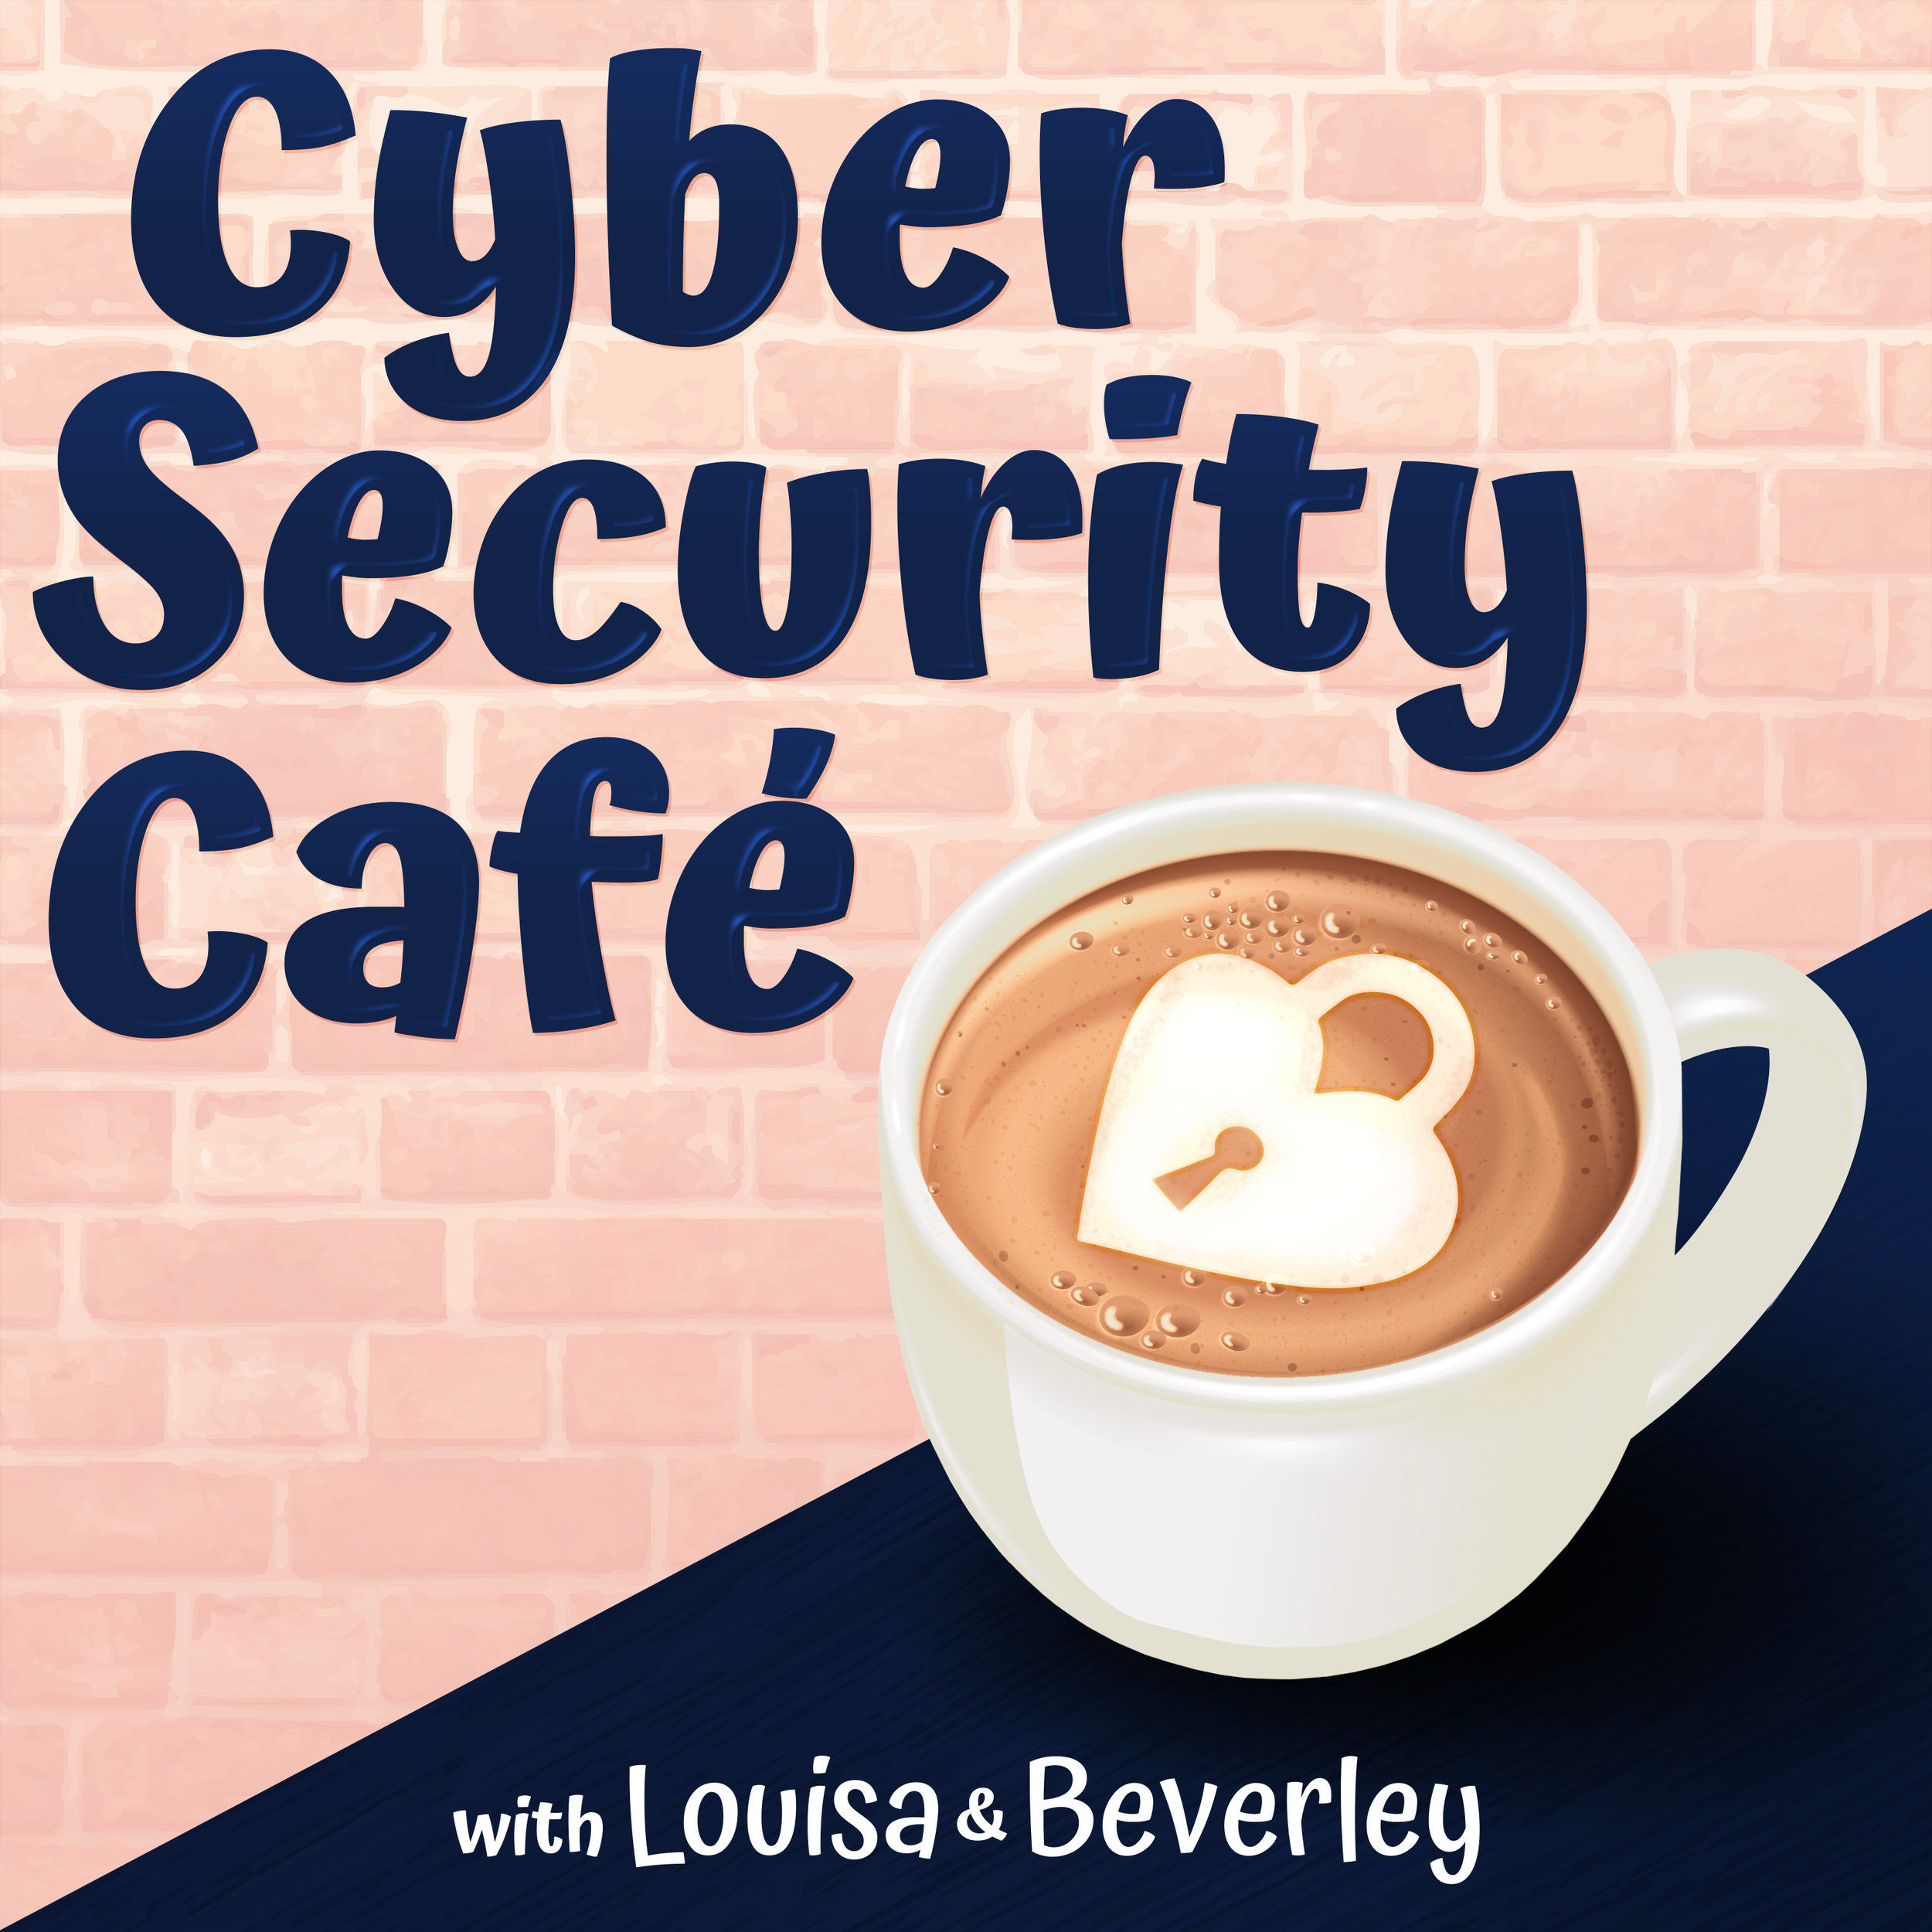 536fdc-cybersecuritycafe_podcastartwork_large.png